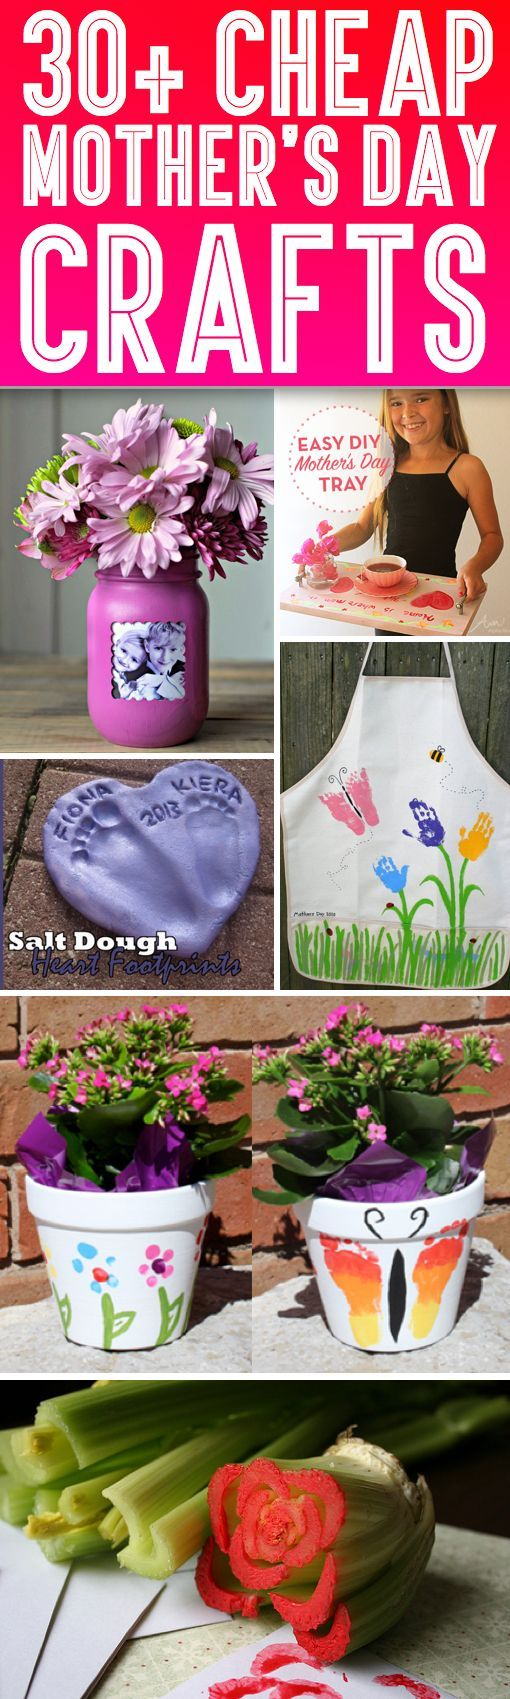 30+ Cheap Mother's Day Crafts That Speak For Themselves!